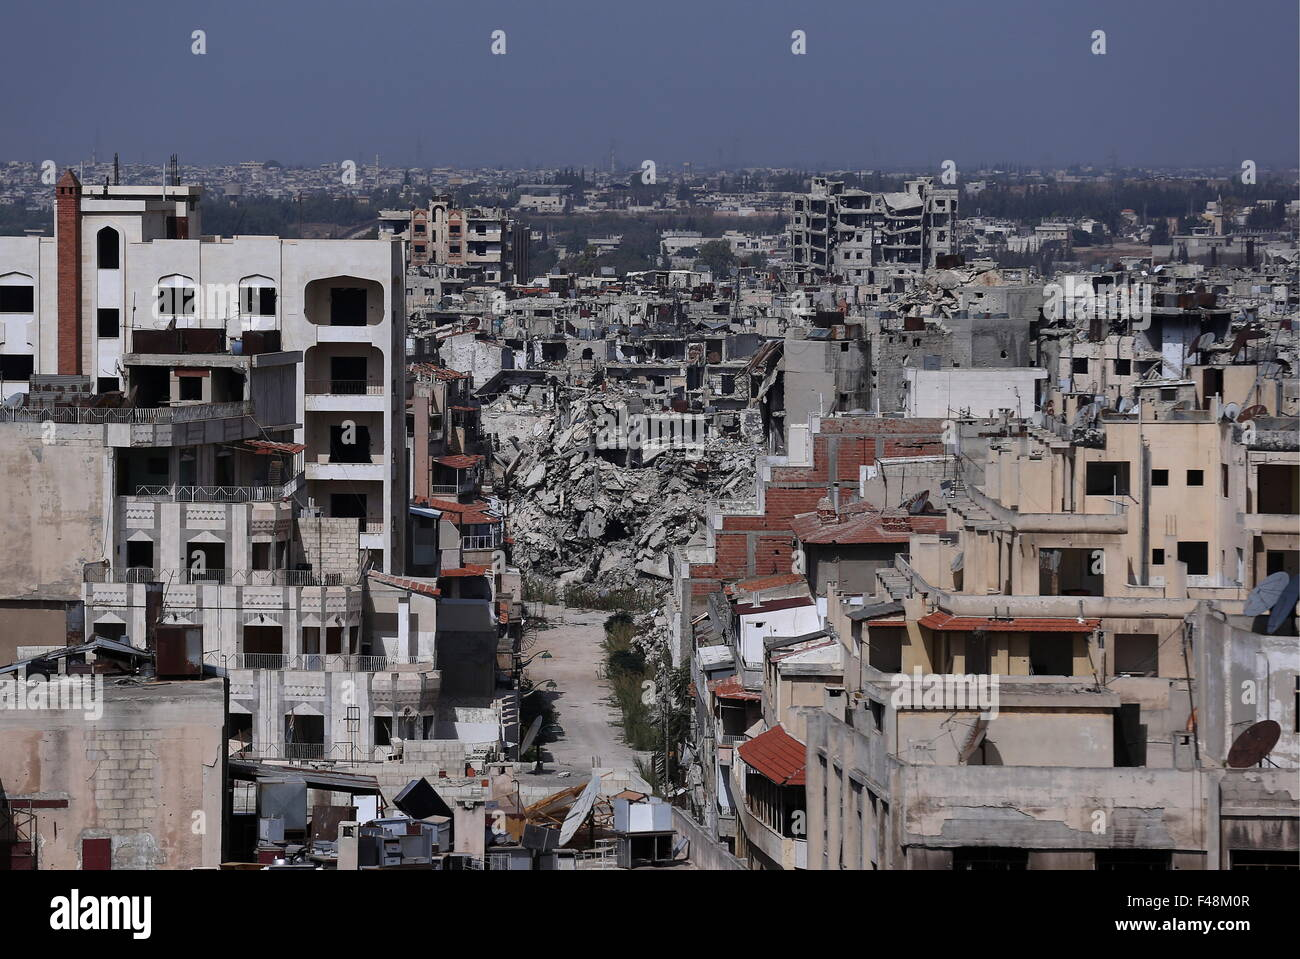 Homs, Syria. 14th Oct, 2015. A residential quarter destroyed during combat operations. © Valery Sharifulin/TASS/Alamy - Stock Image